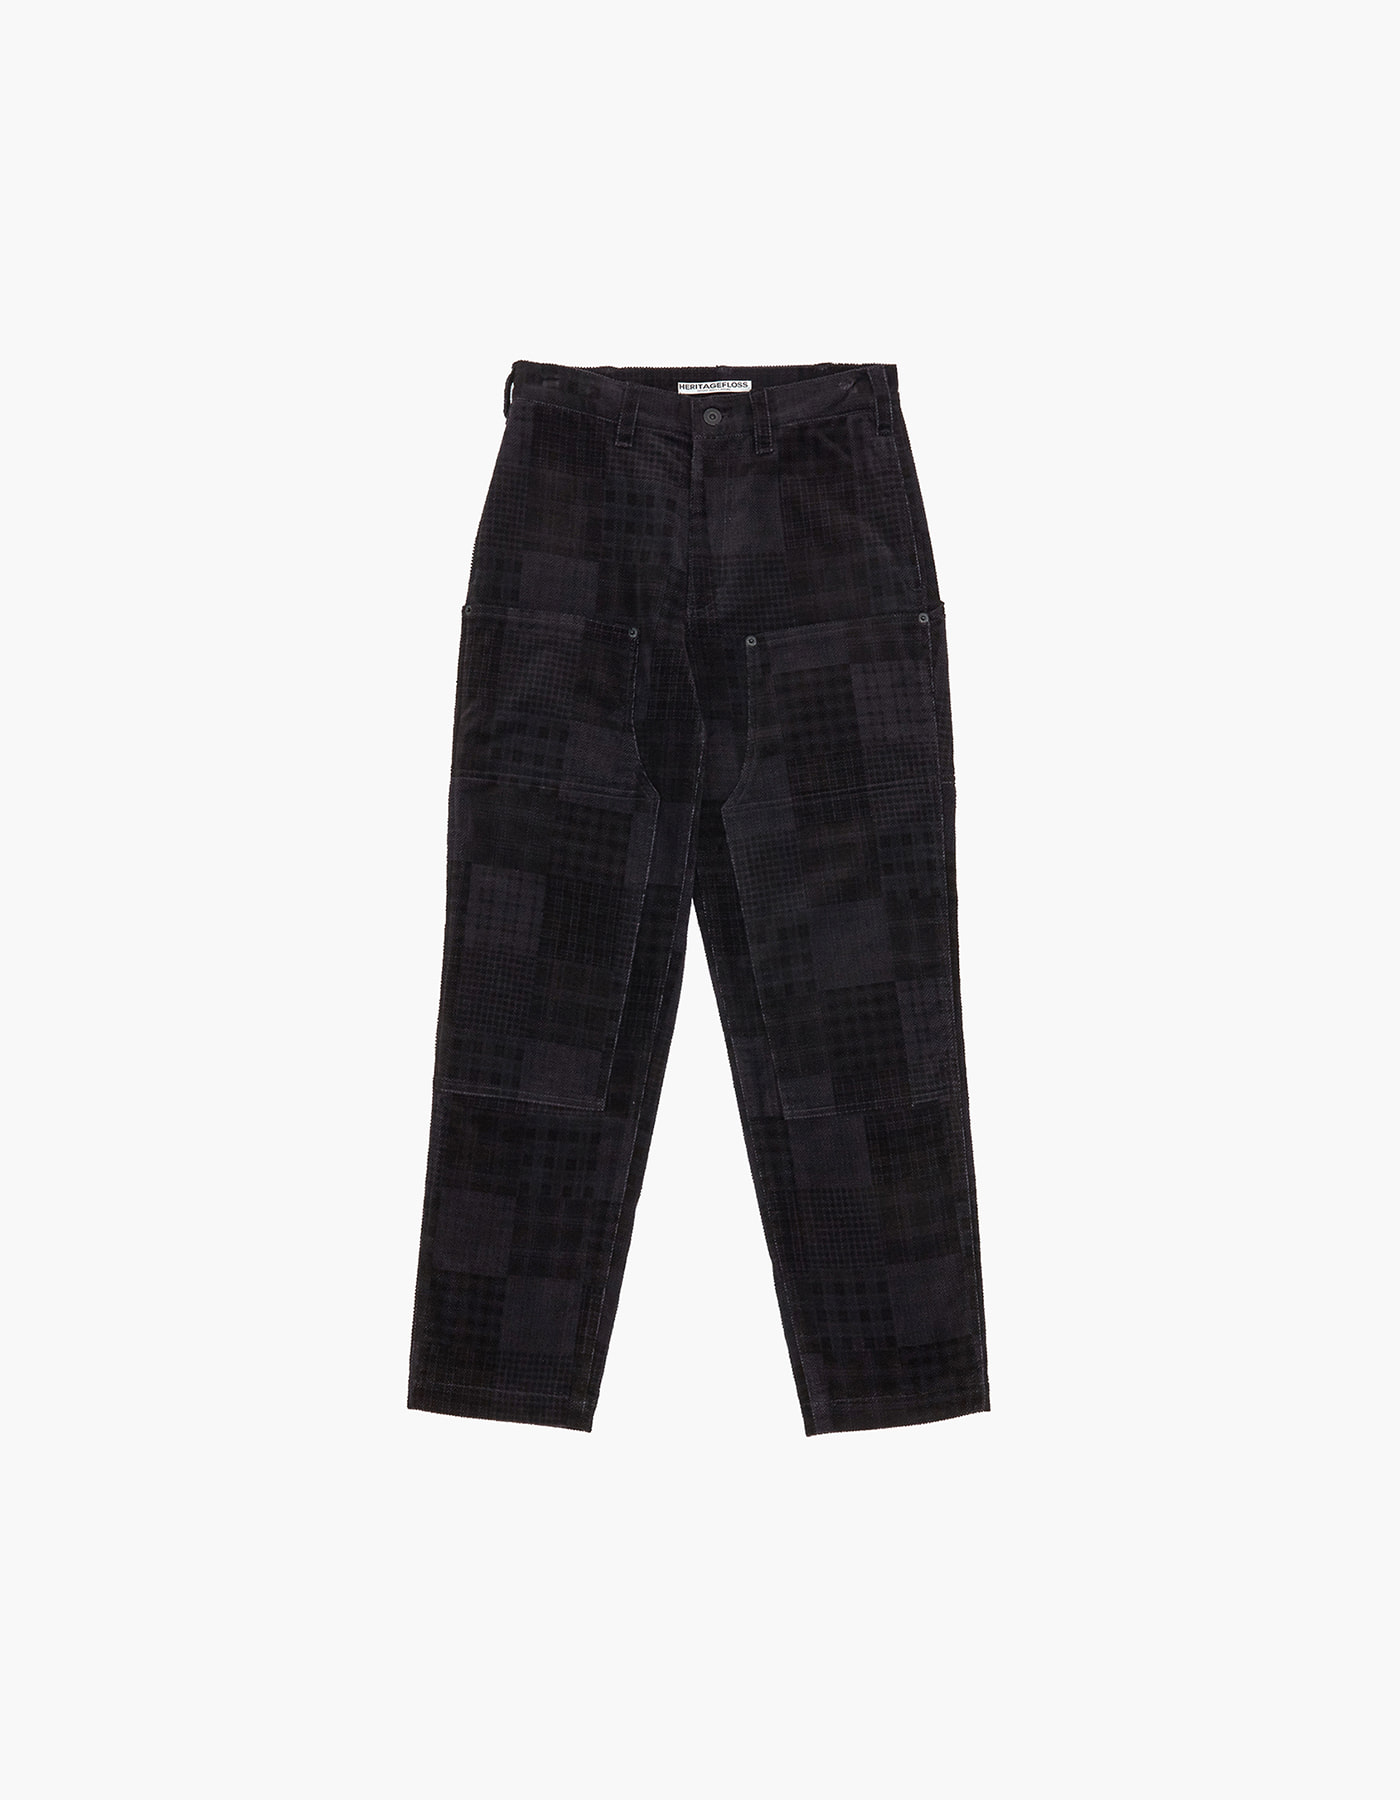 CORDUROY WORK PANTS / GREY